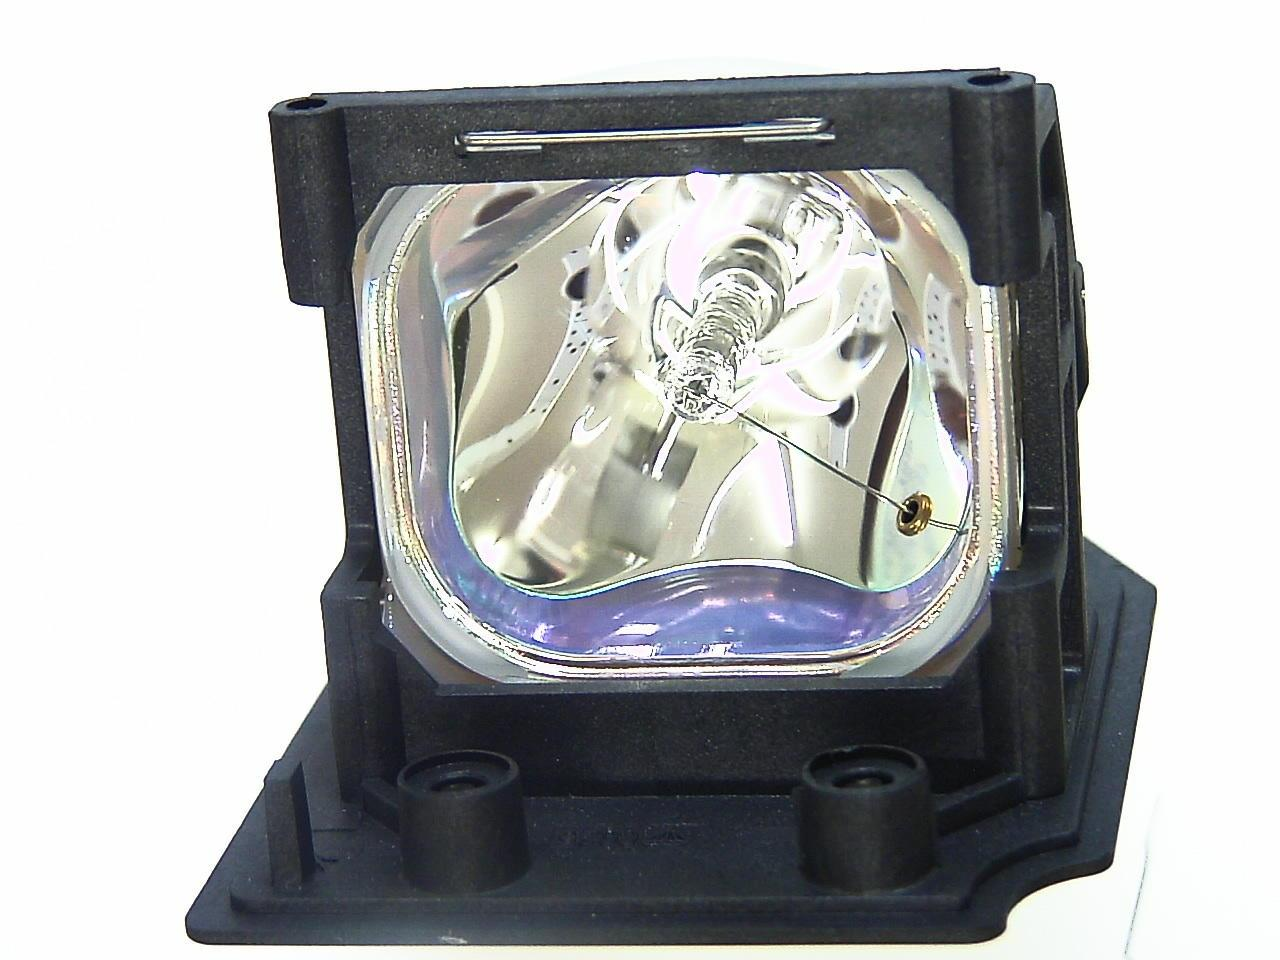 ANDERS KERN ANDERS KERN AST-BEAM X110 Genuine Original Projector Lamp